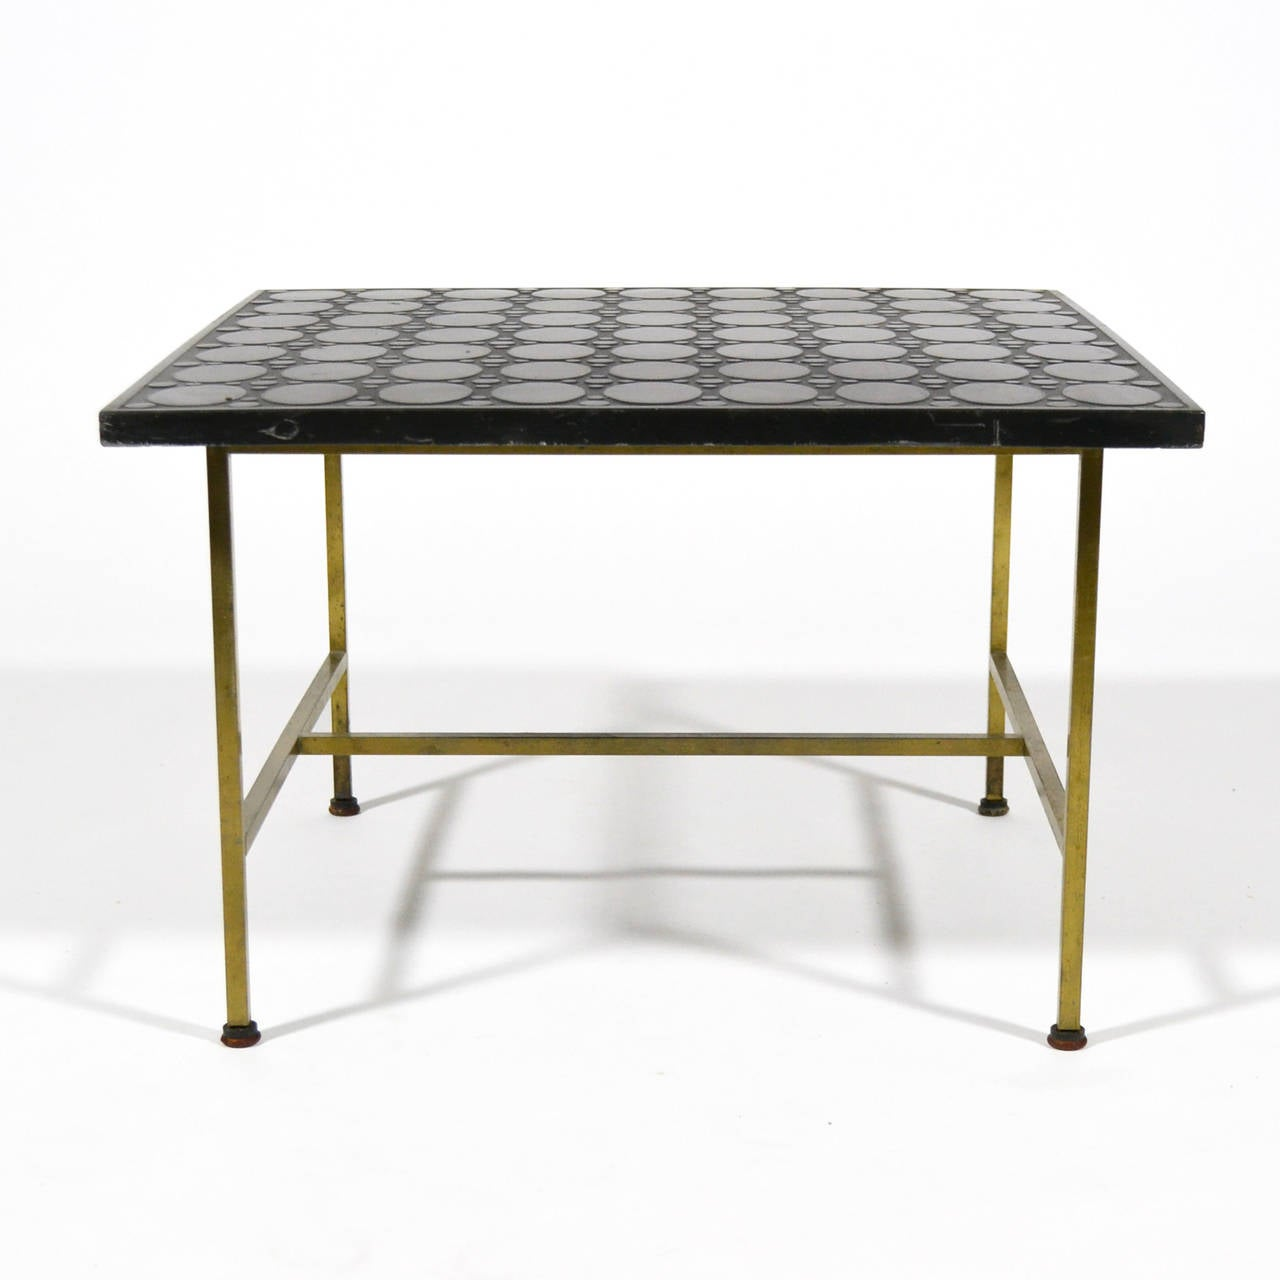 The Paul McCobb side or end table features a brass base and a most unusual top with a wonderful textured pattern. This table is more commonly seen with a travertine or vitrolite top. The rich black top has a delightful pattern of circles and